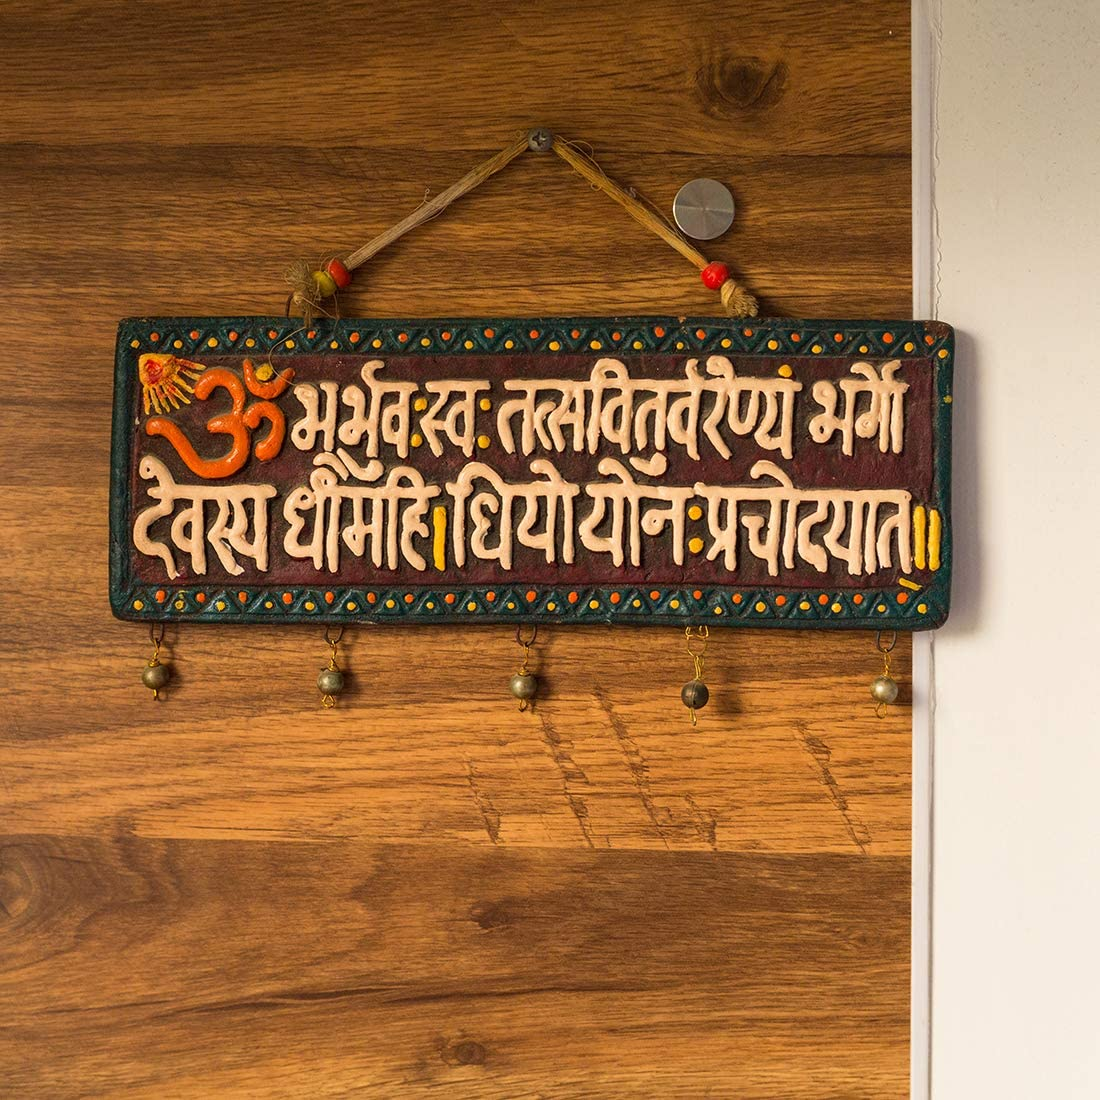 ExclusiveLane Gayatri Mantra Terracotta Wall Hanging - Wall Door Hanging Religious Wall Decoration Wall Decorative Showpiece Gift Item Home Décor Accents Wall Decor & Hangings